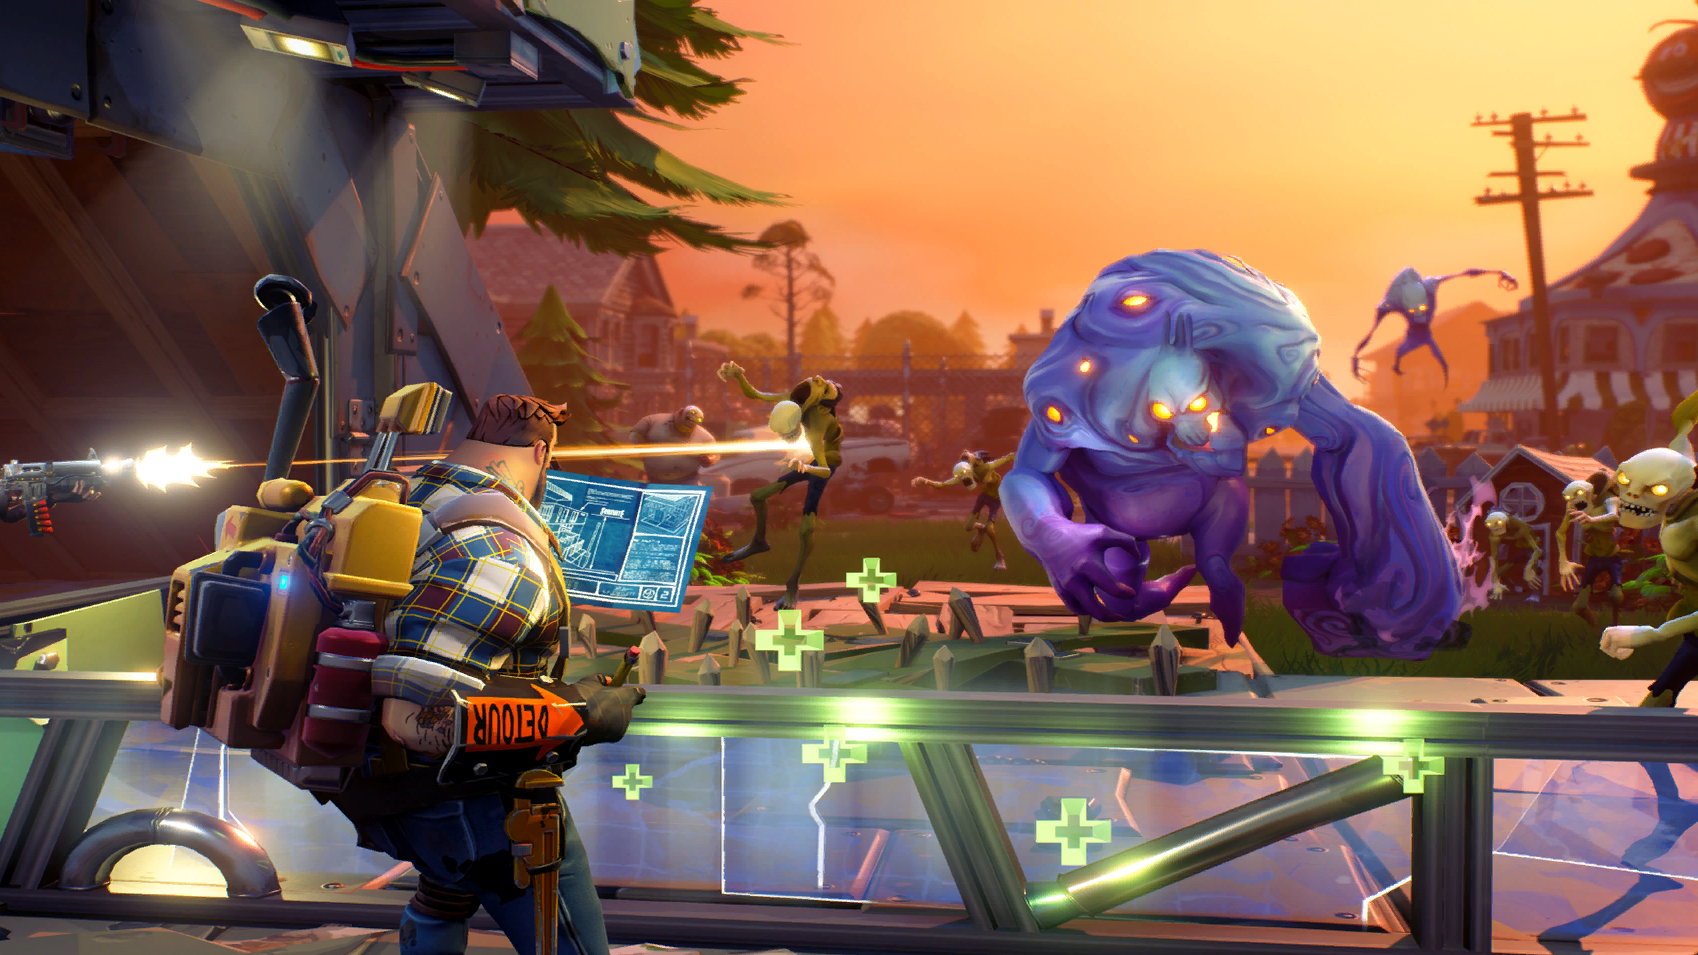 Latest Fortnite Save The World Update Makes Big Changes To Heroes